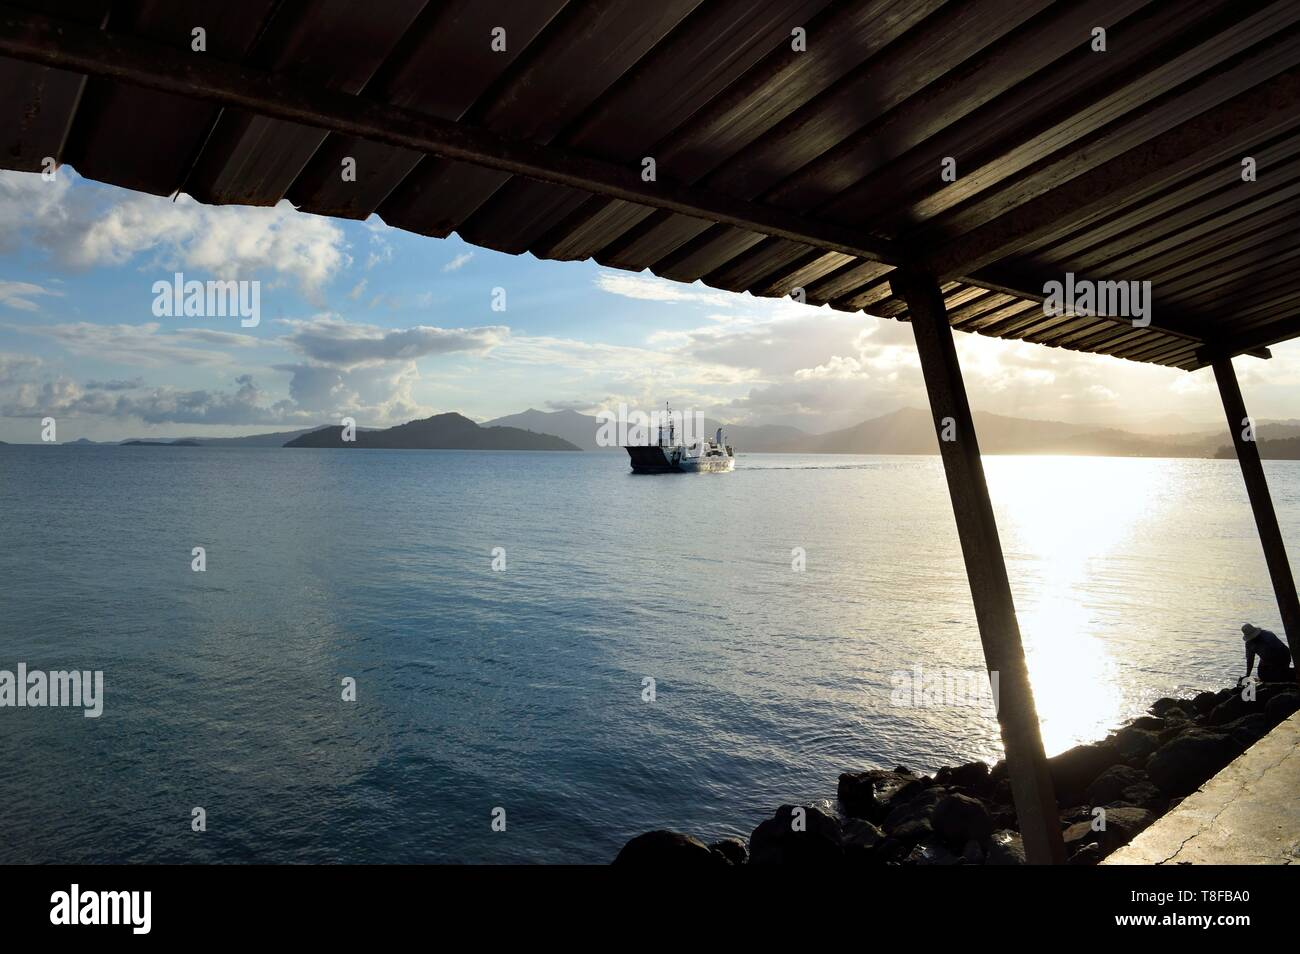 France, Mayotte island (French overseas department), Petite Terre, Dzaoudzi, arrival of the barge coming from Mamoudzou on Grande Terre - Stock Image